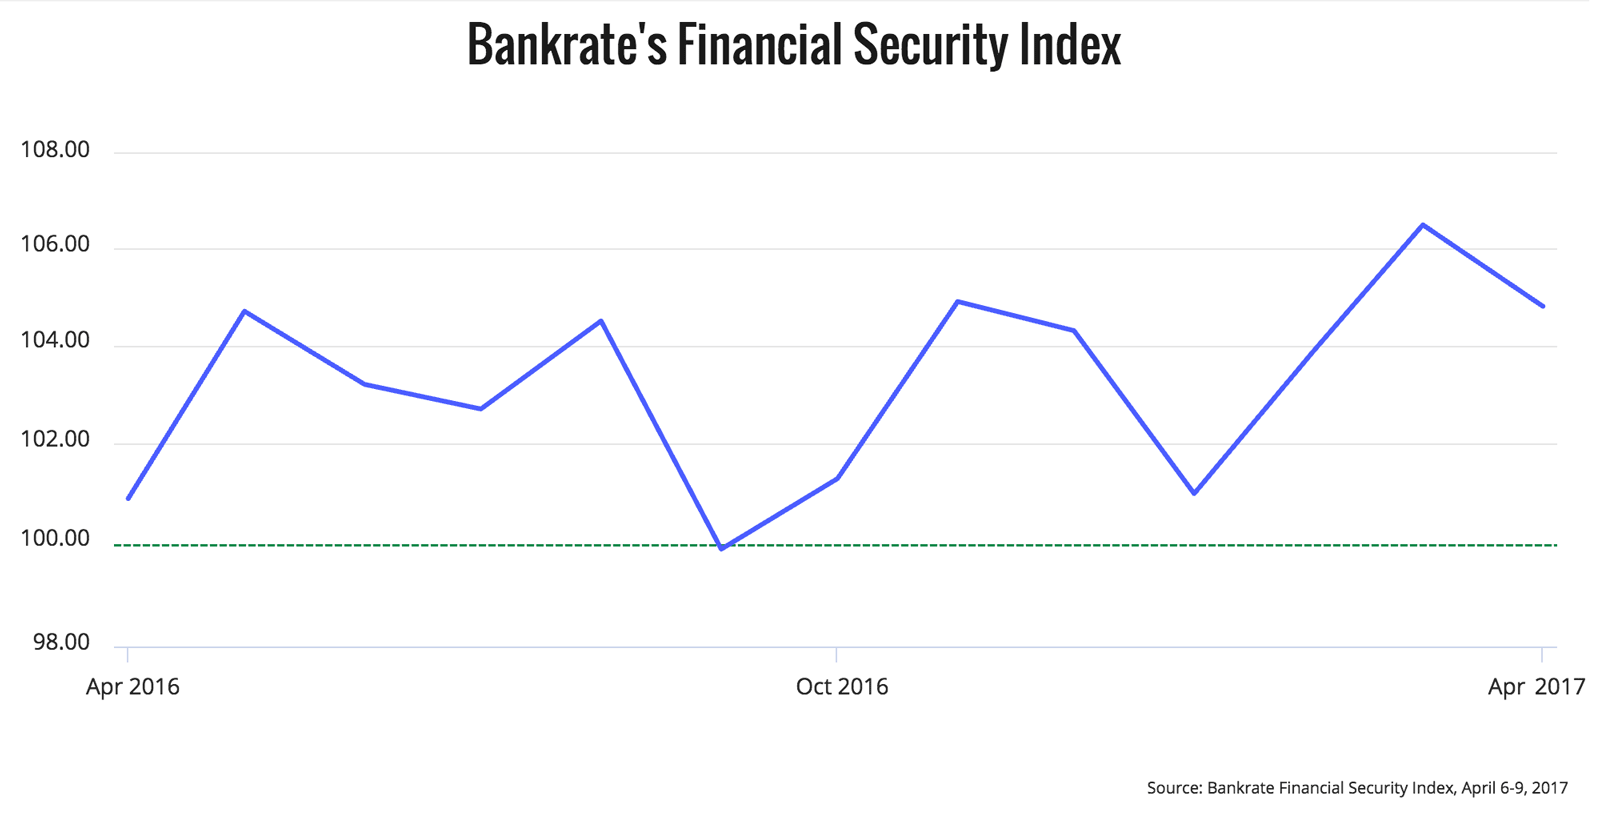 Bankrate's Financial Security Index